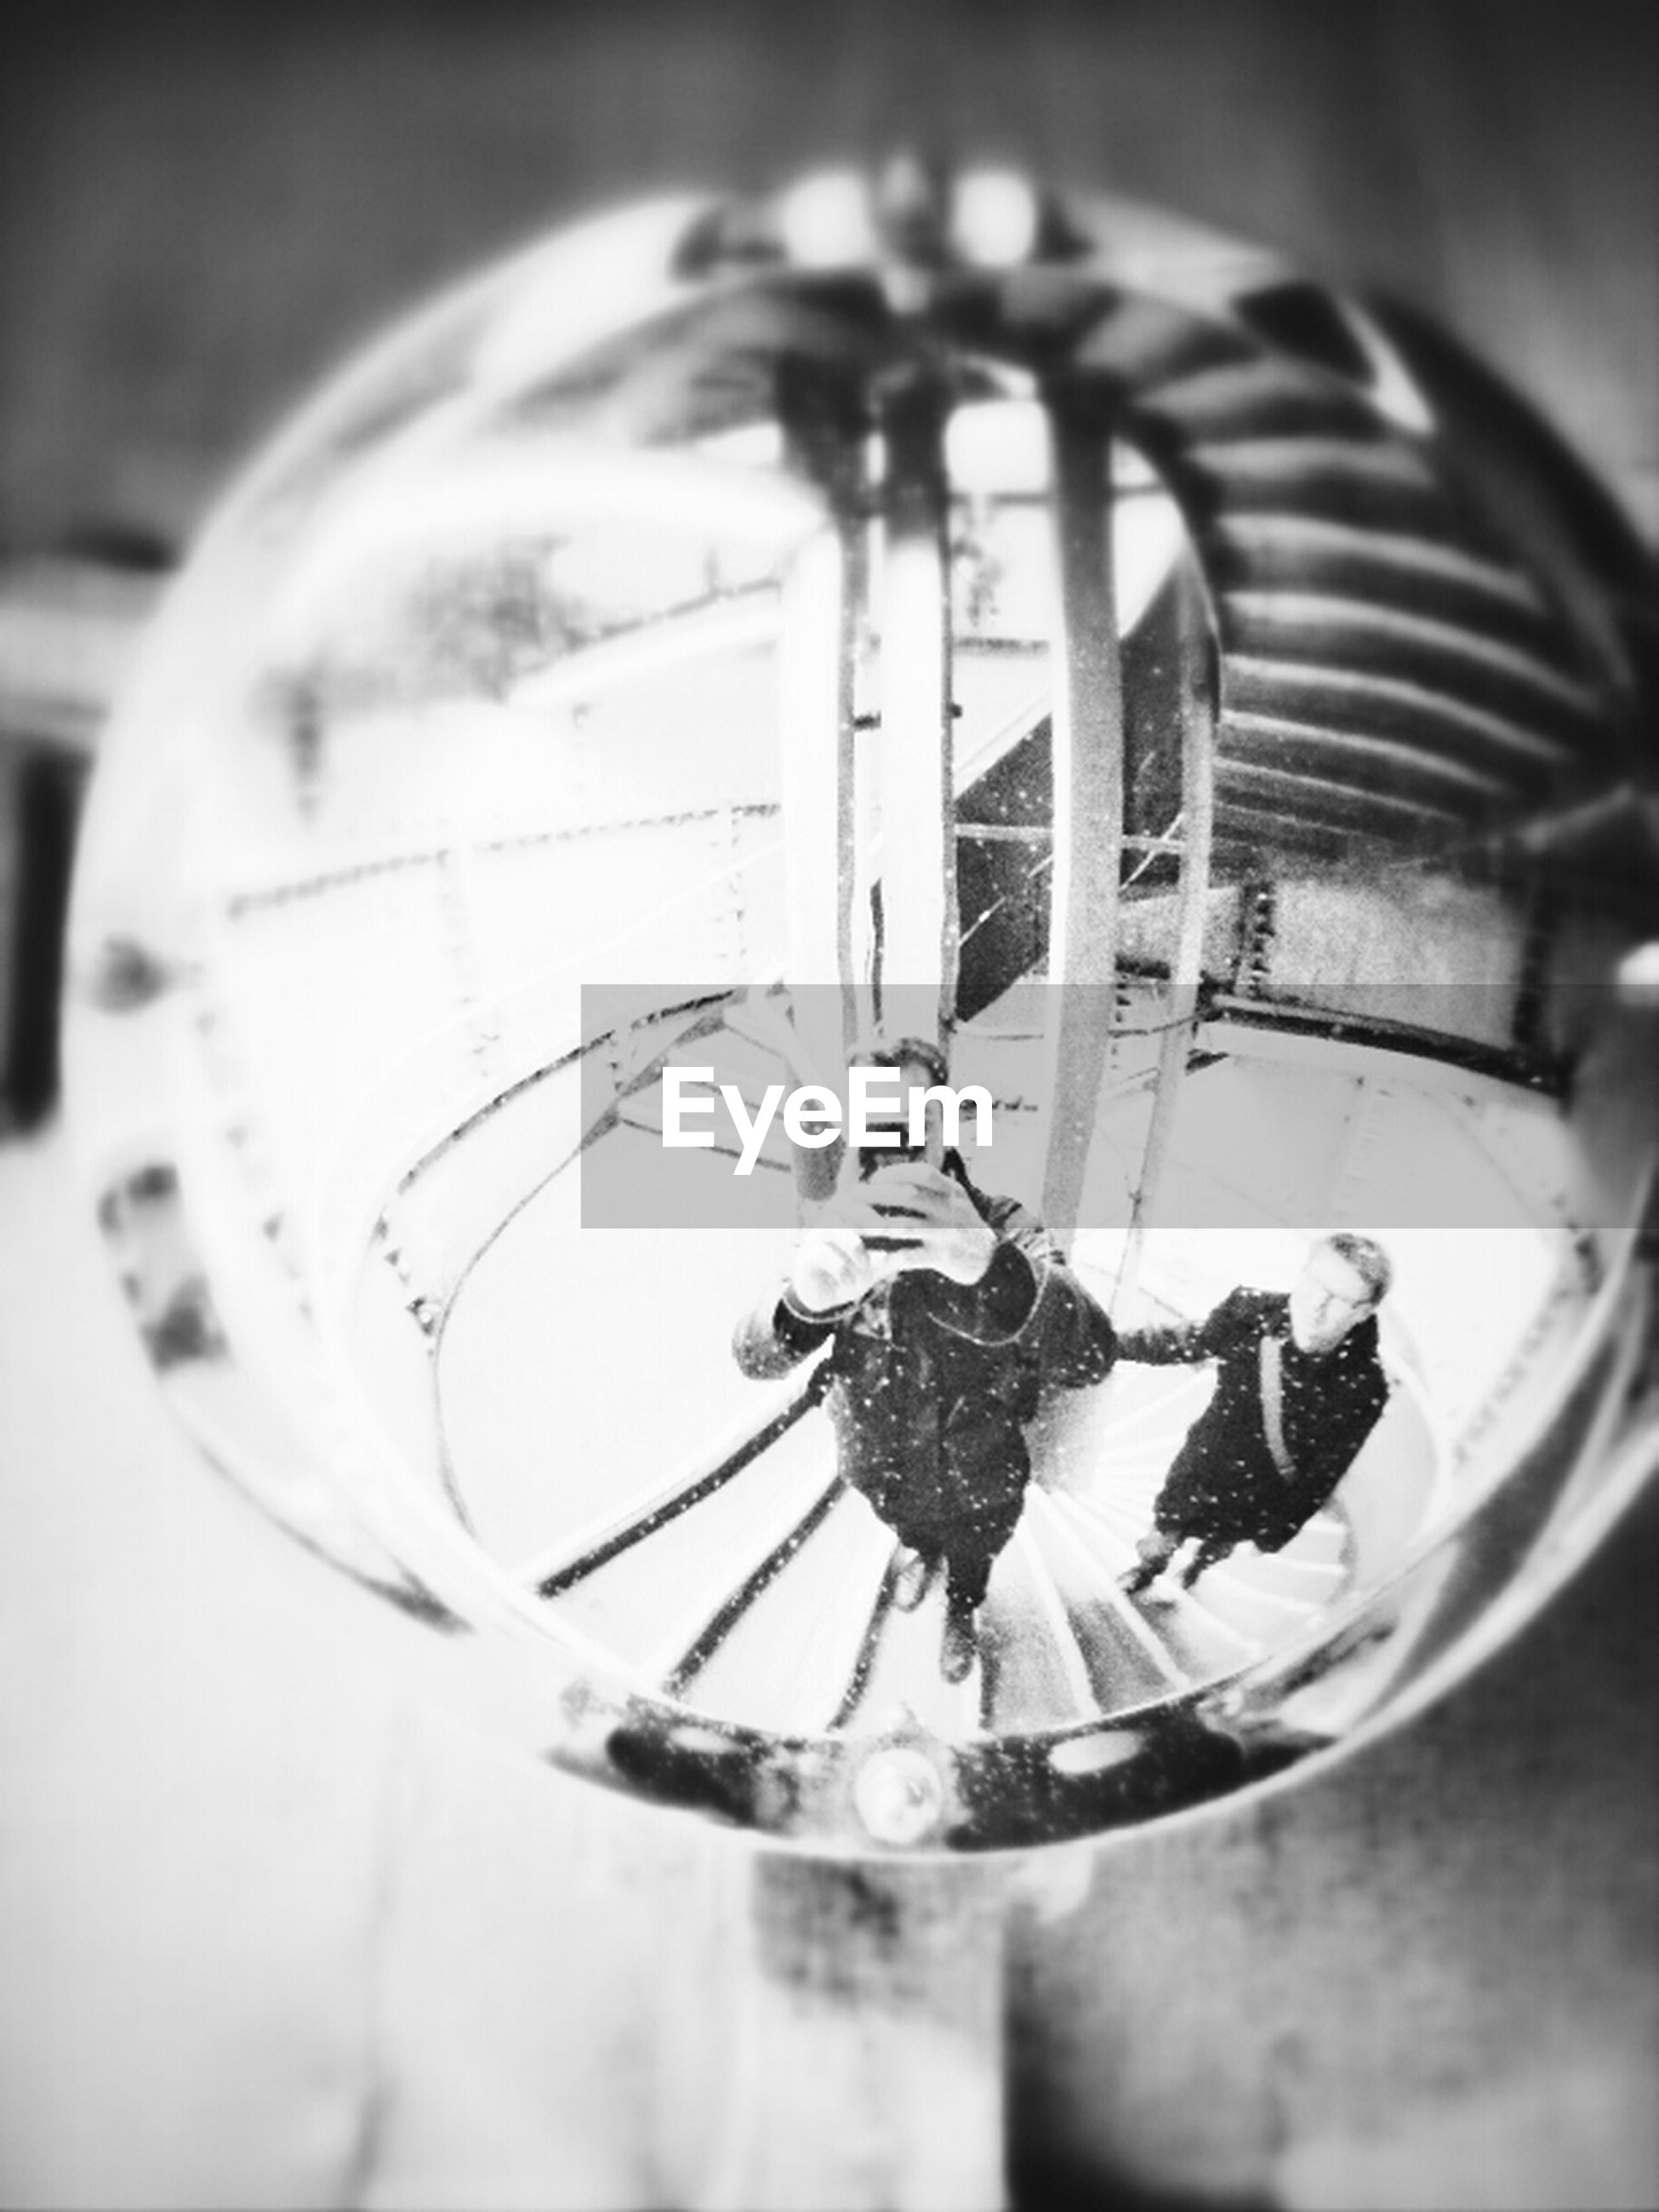 indoors, close-up, focus on foreground, glass - material, circle, low angle view, ceiling, no people, still life, lighting equipment, metal, reflection, home interior, arts culture and entertainment, hanging, transparent, table, selective focus, technology, shiny